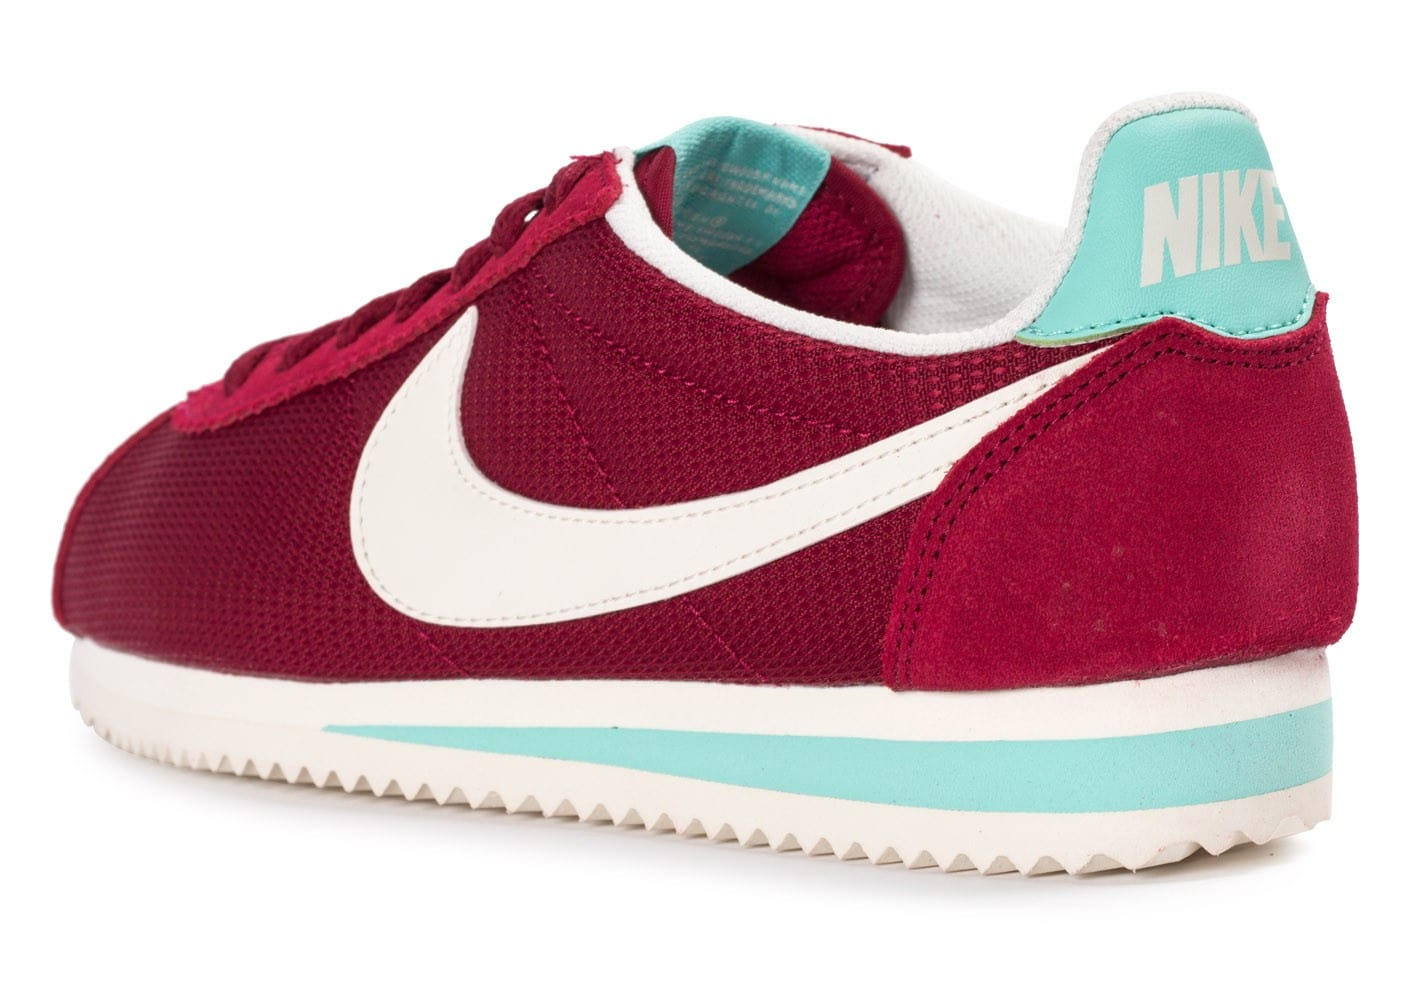 nike cortez txt bordeaux chaussures toutes les baskets sold es chausport. Black Bedroom Furniture Sets. Home Design Ideas